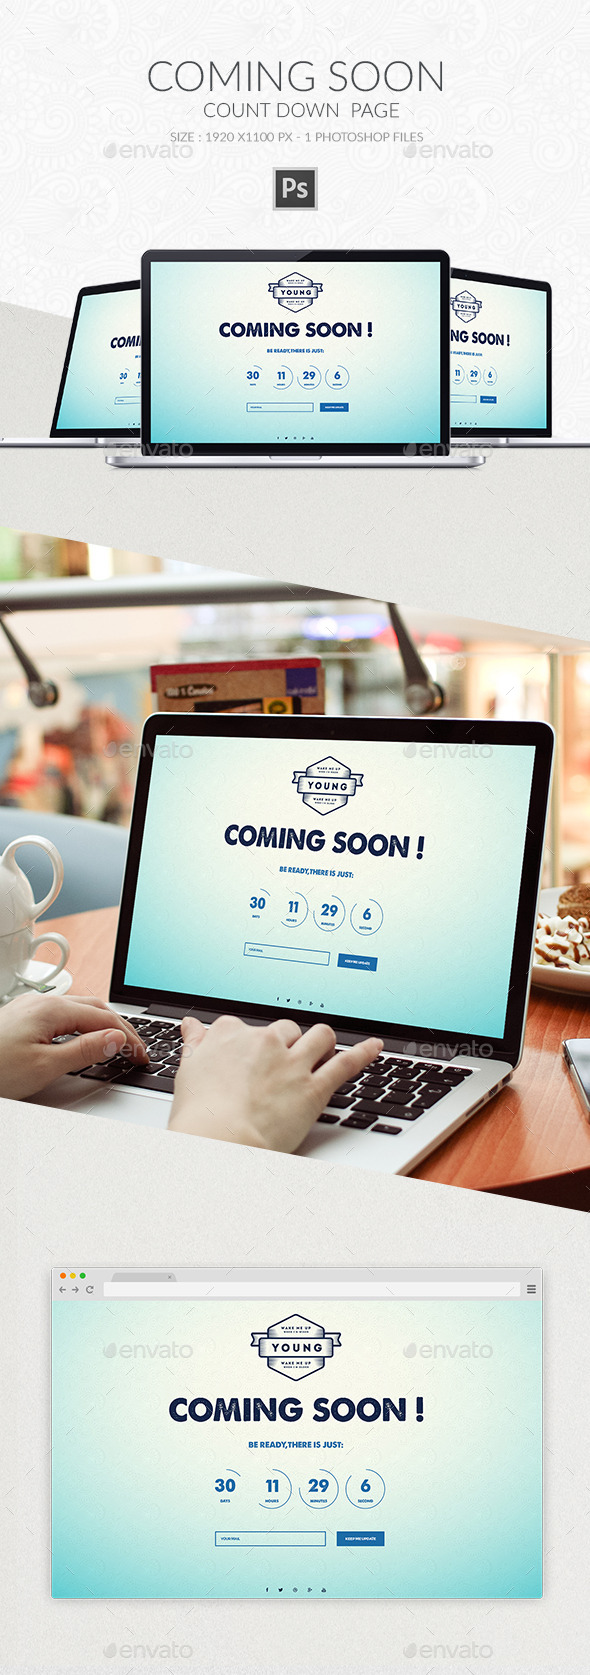 Coming Soon Page PSD 3 - Web Elements